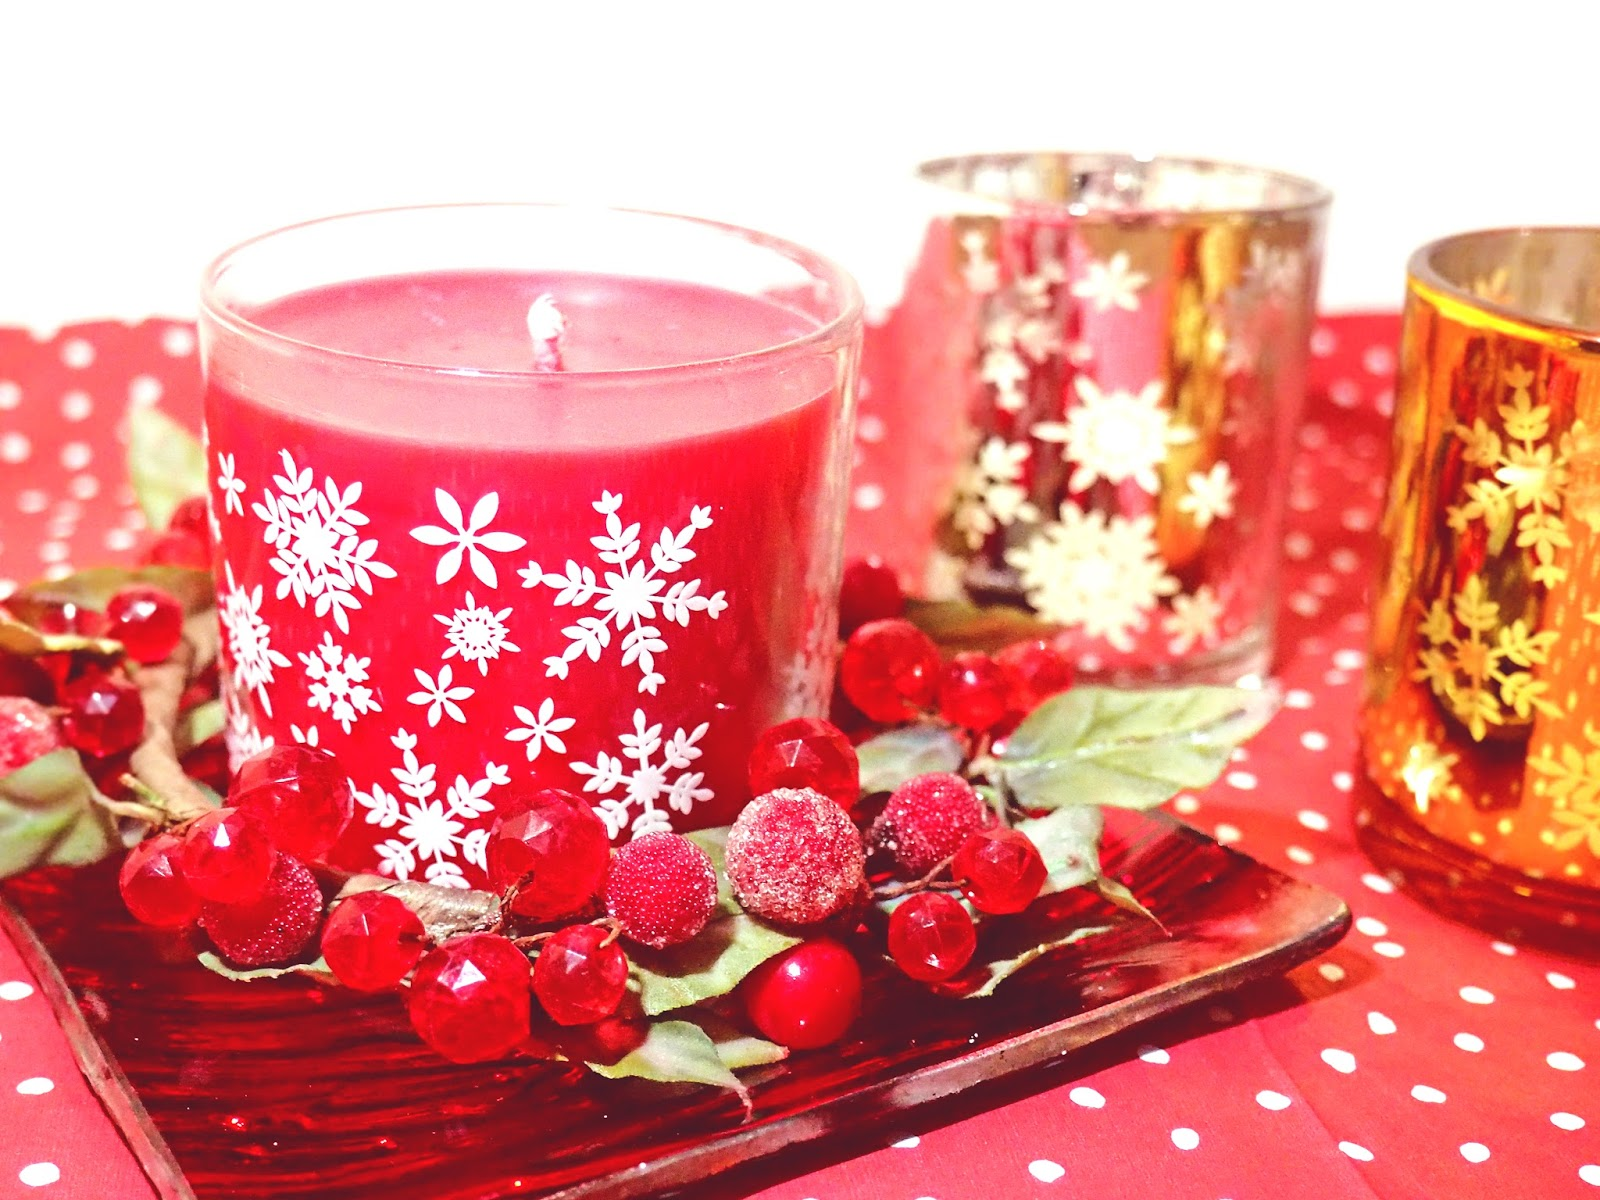 PartyLite Reminiscent Crimson Berry Candle Review Giveaway